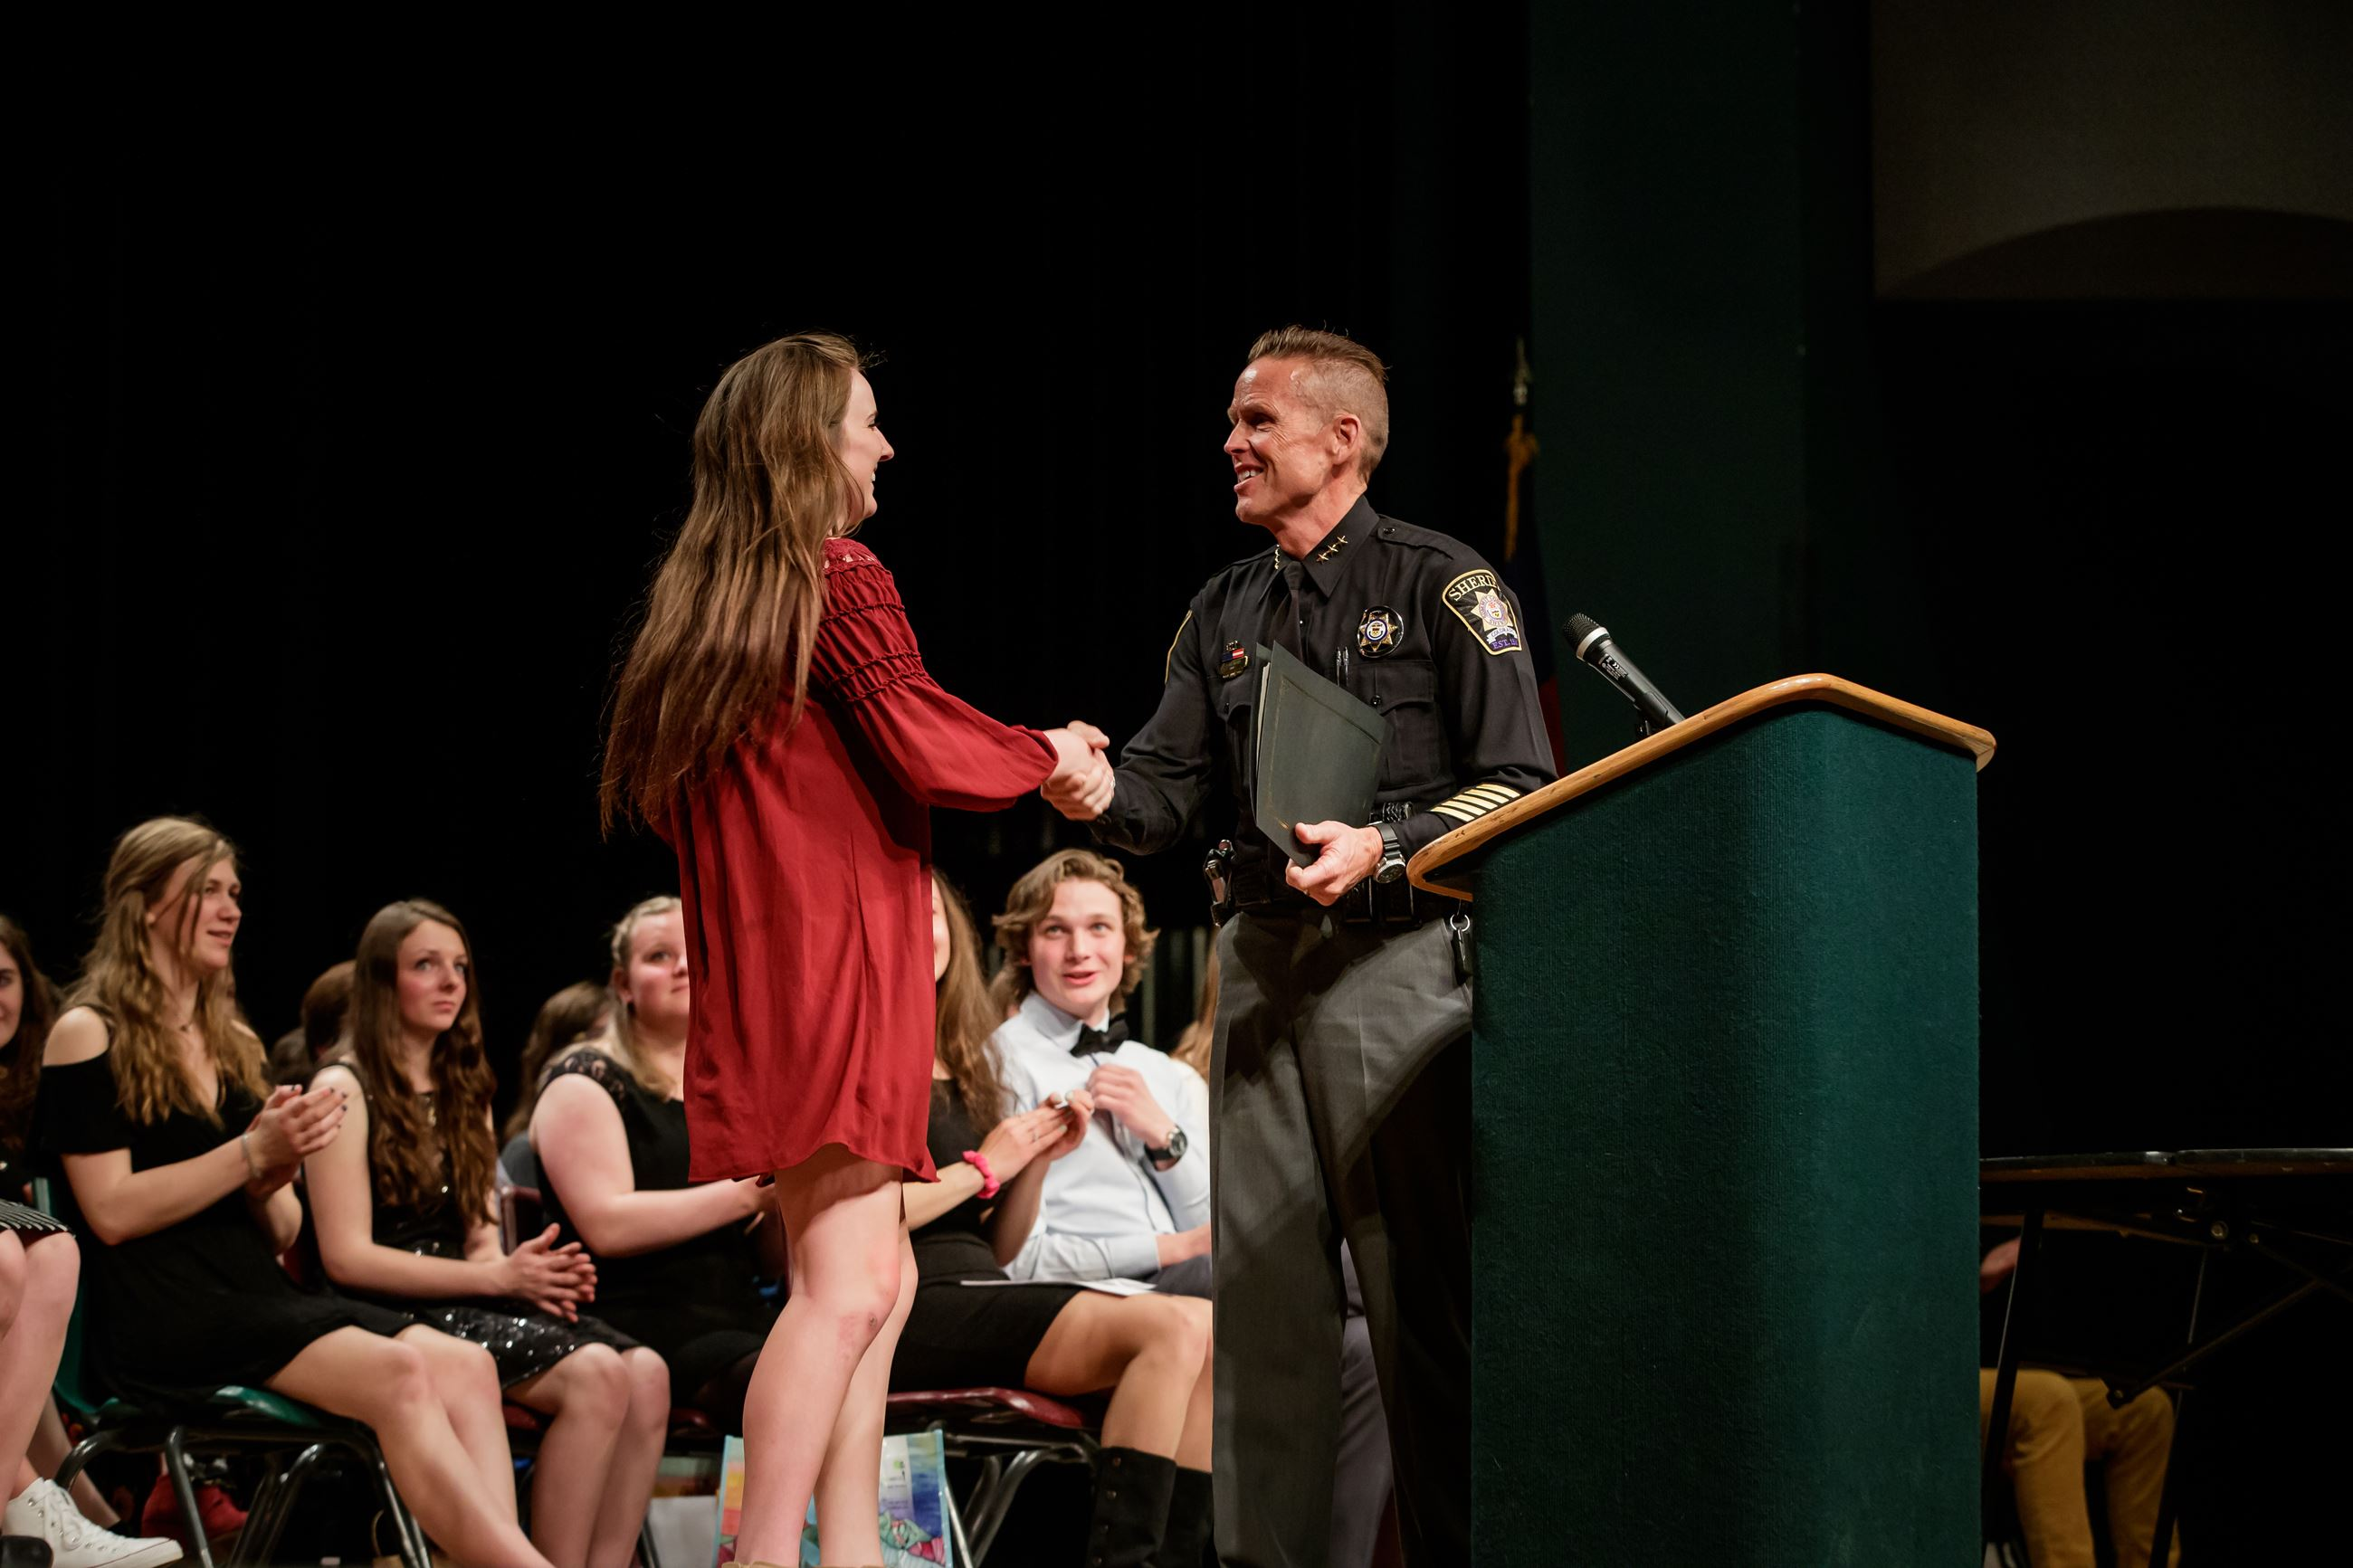 Sheriff FitzSimons awards the 2019 Summit County Leadership Scholarship